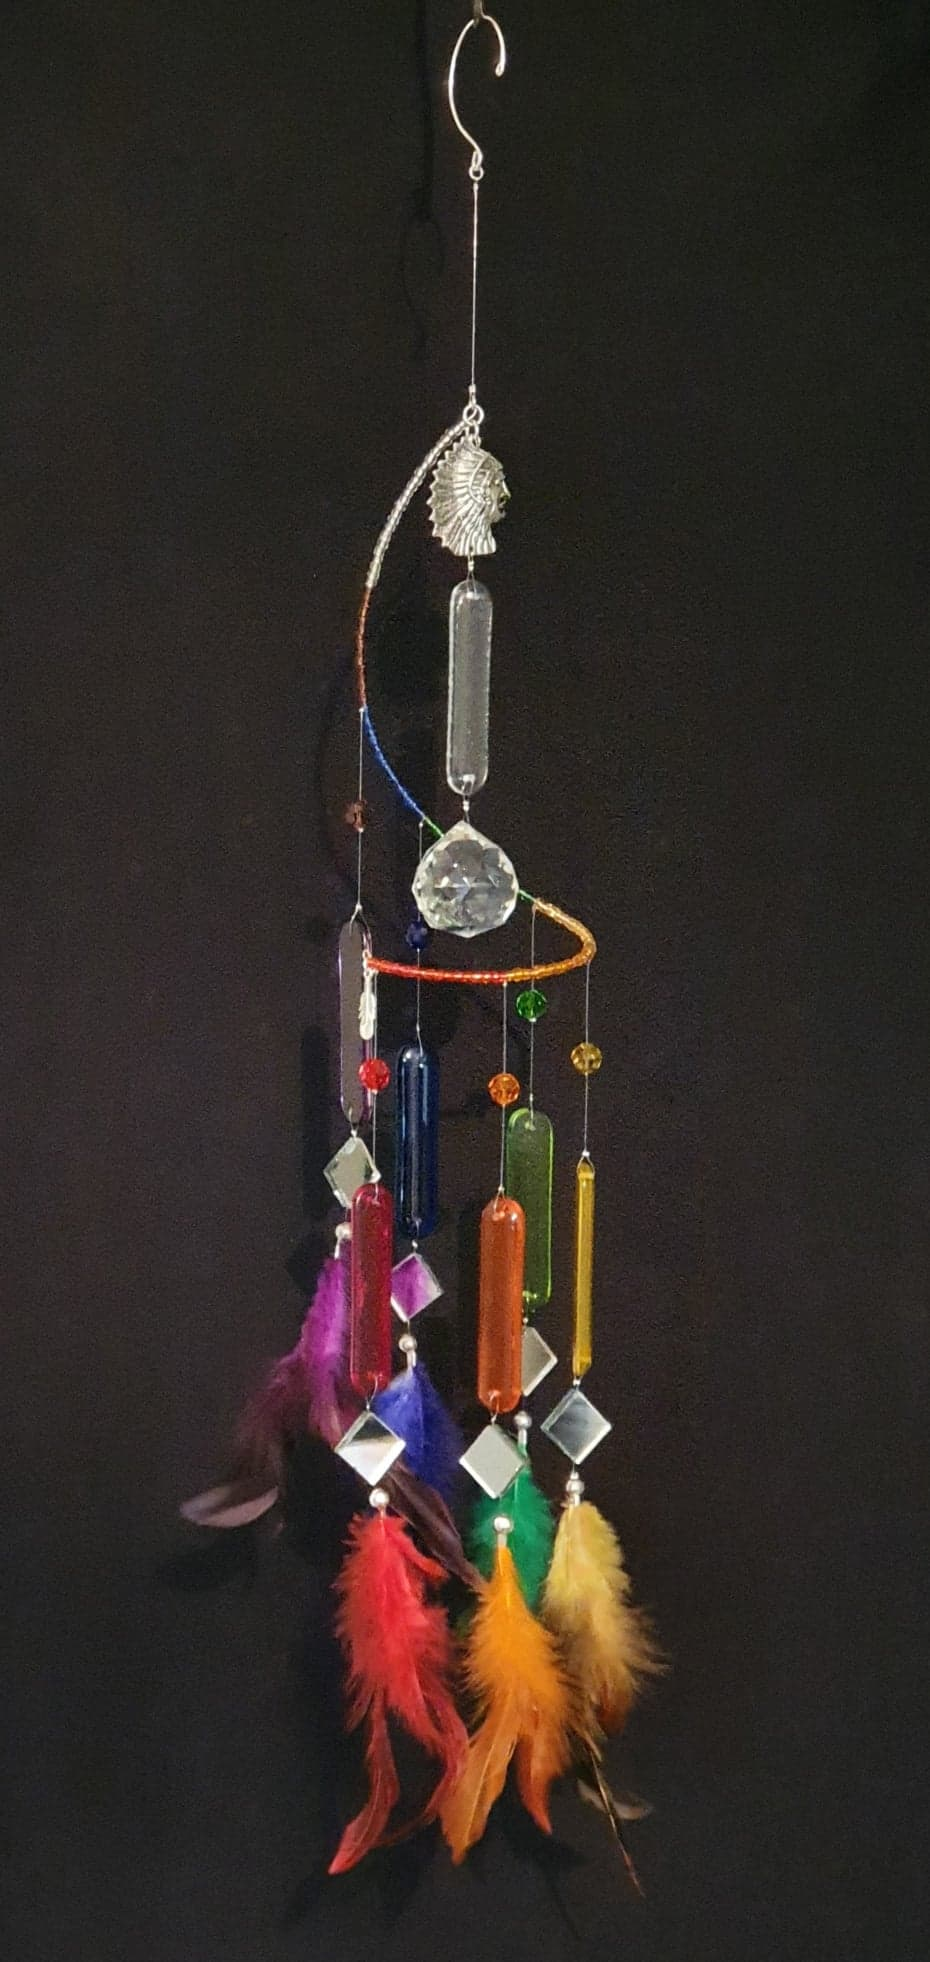 American Indian theme, Rainbow / chakra colour suncatcher with feathers